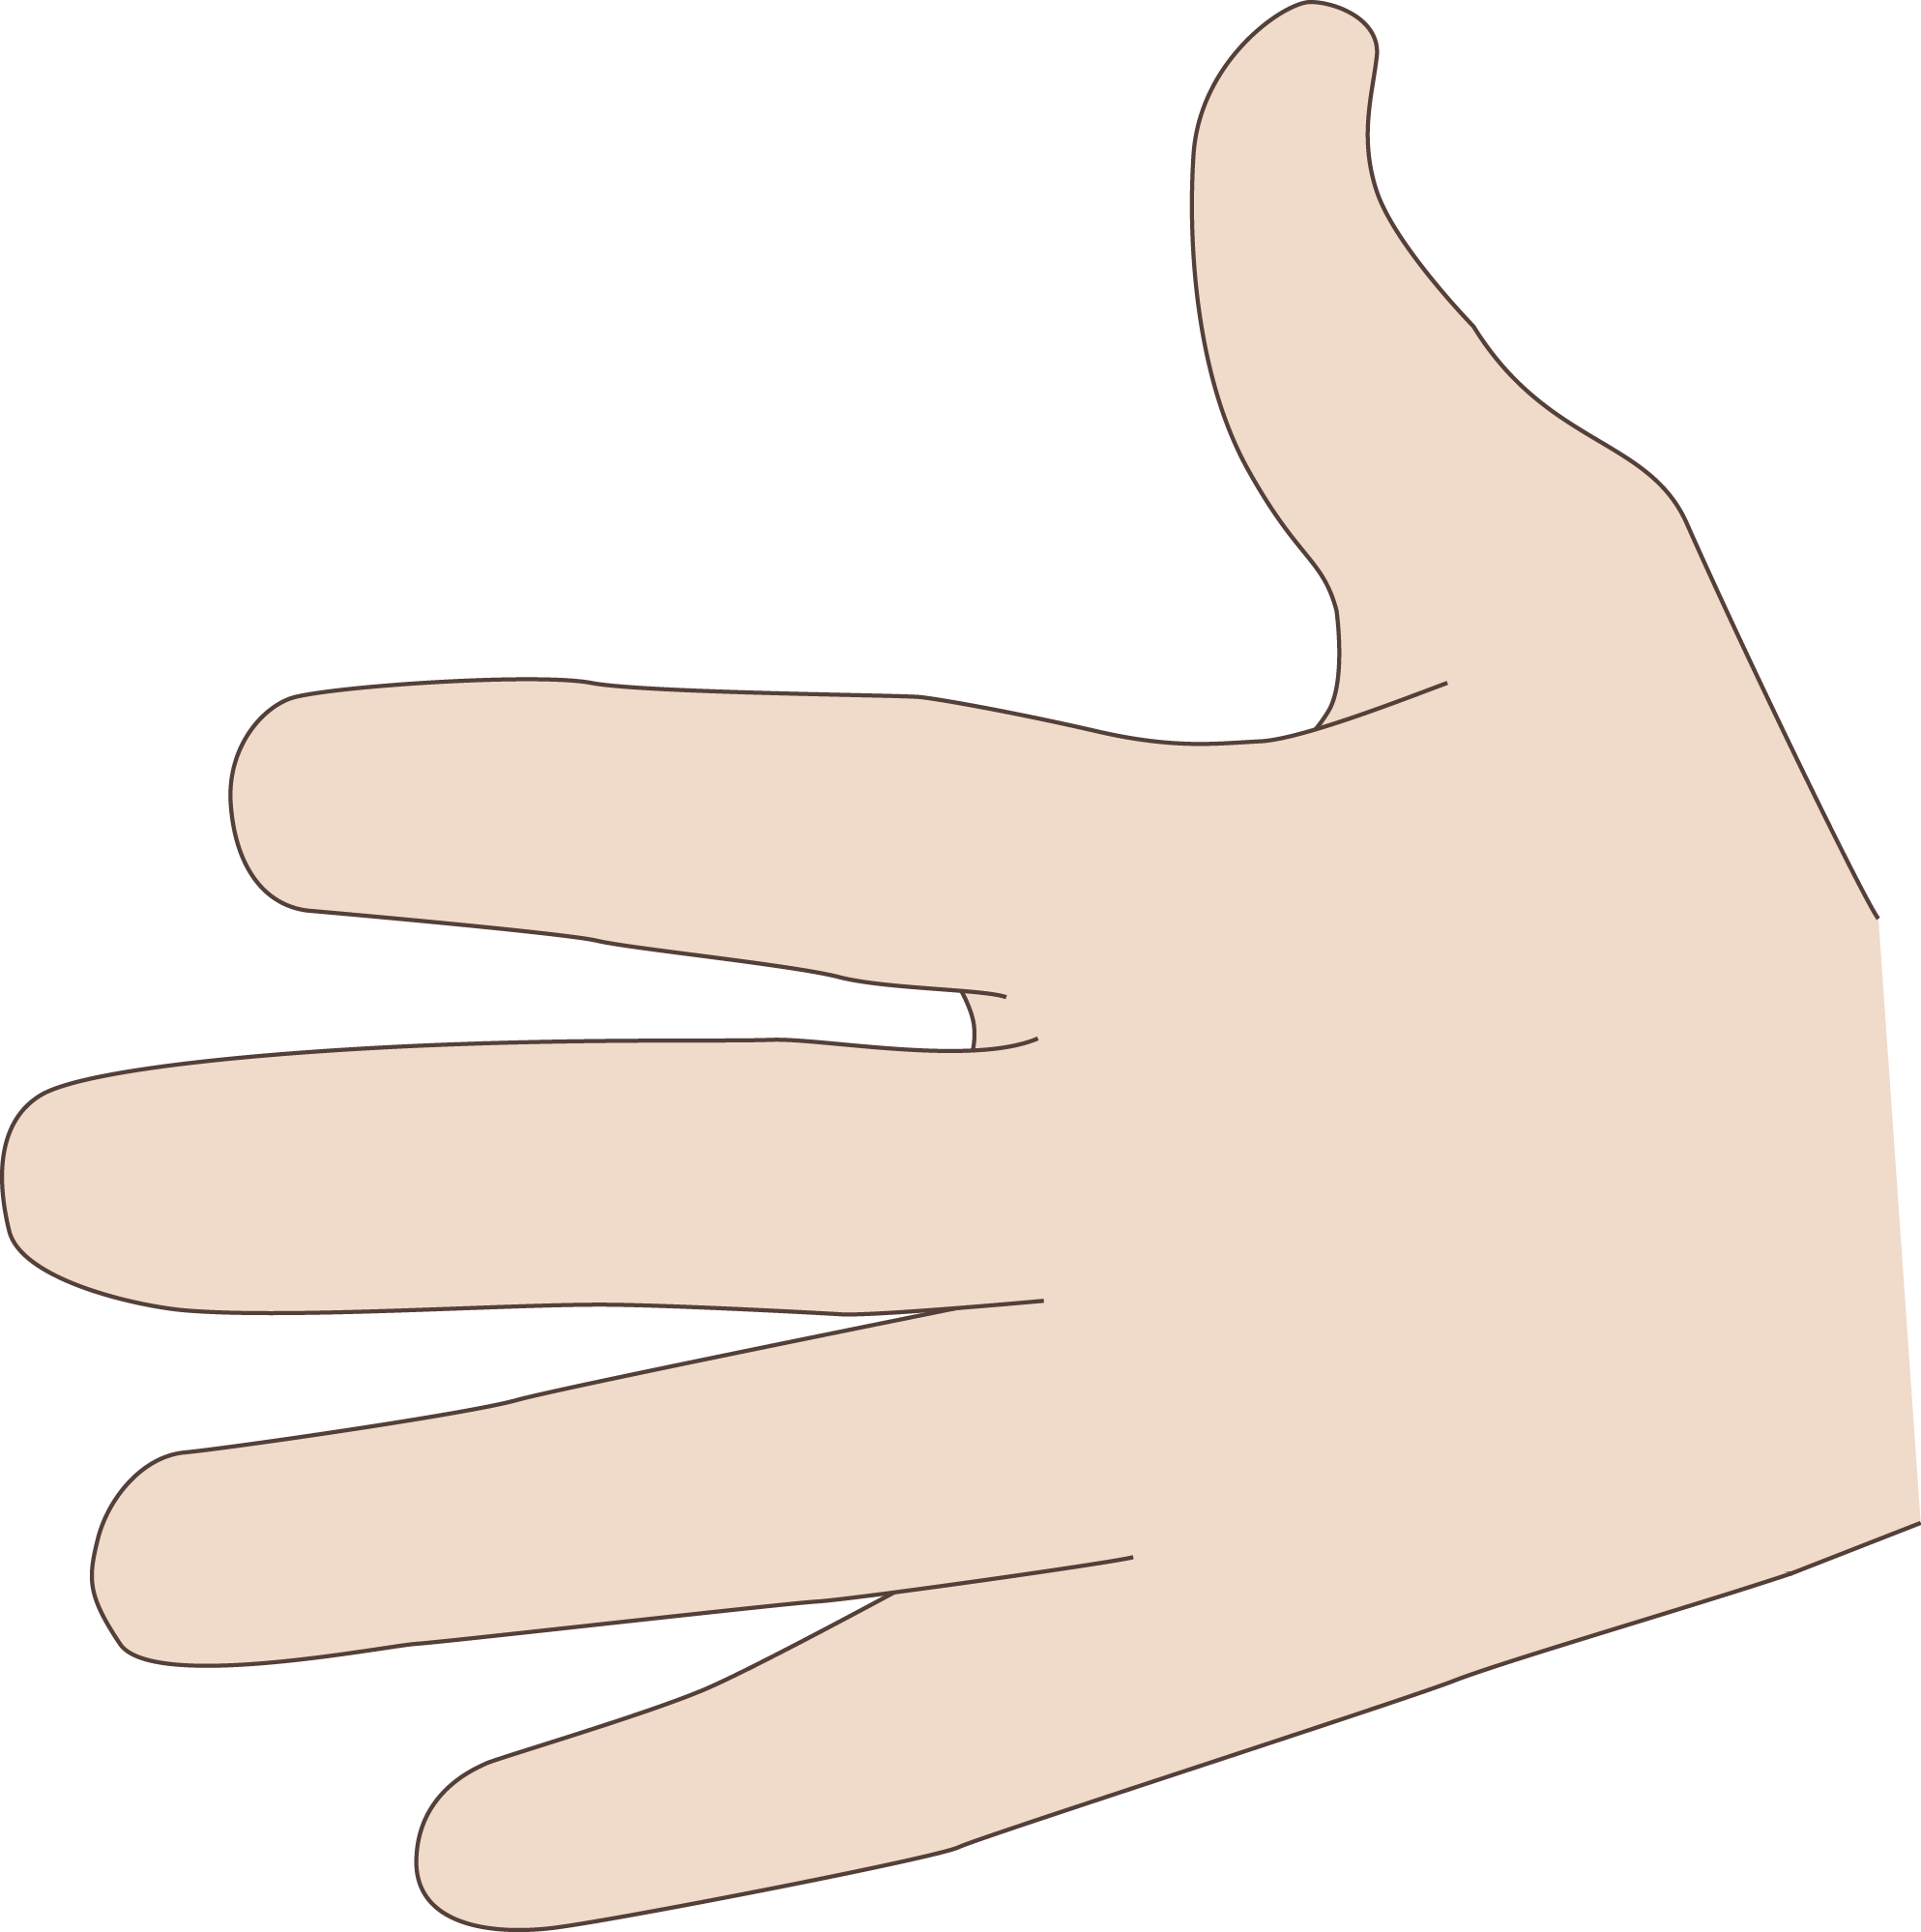 Coding manual all fingers. Finger clipart hand span